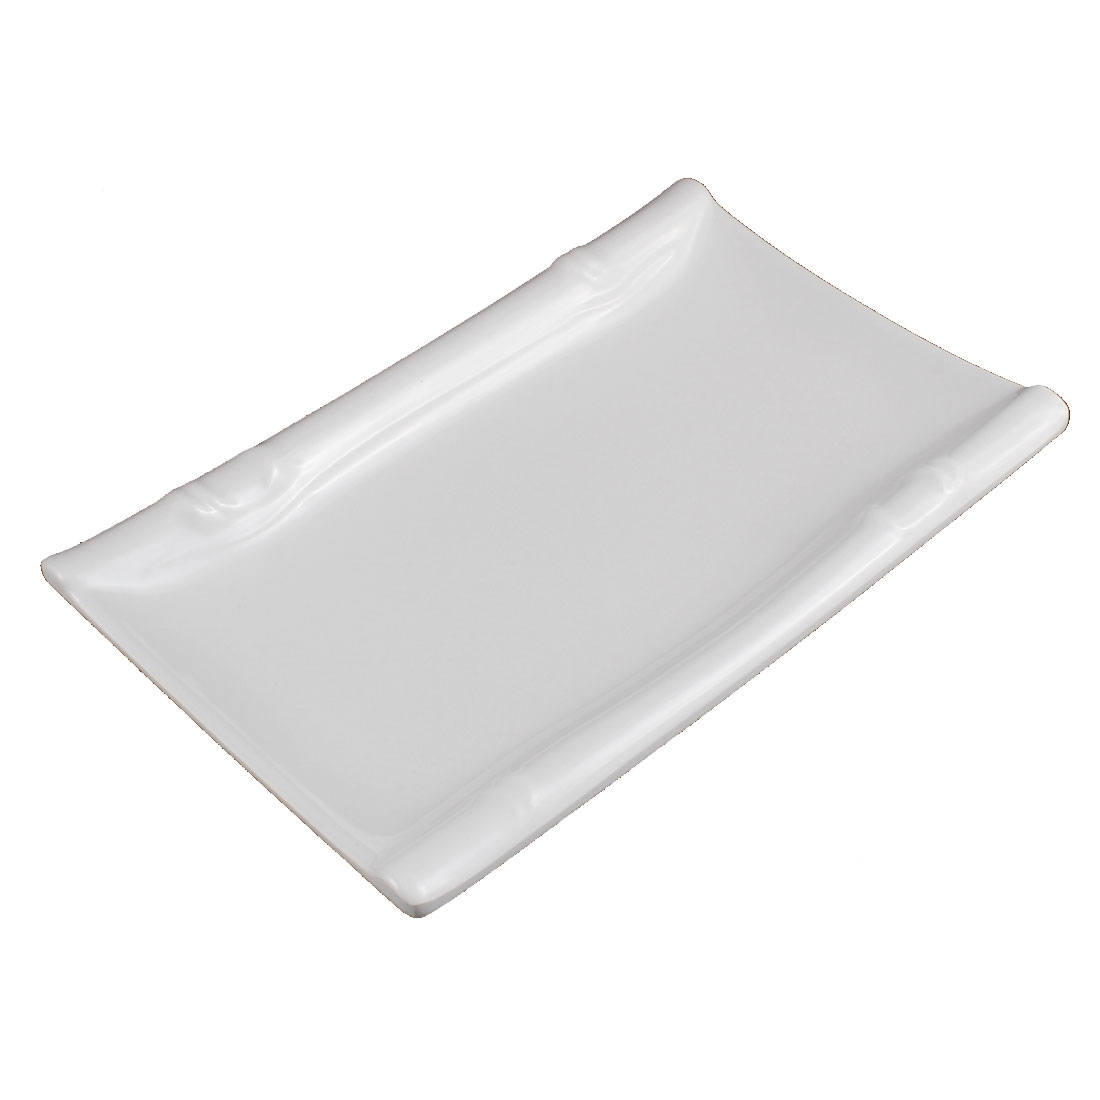 Restaurant Rectangle Shaped Dessert Food Appetizer Serving Plate Dish 21x13.5cm